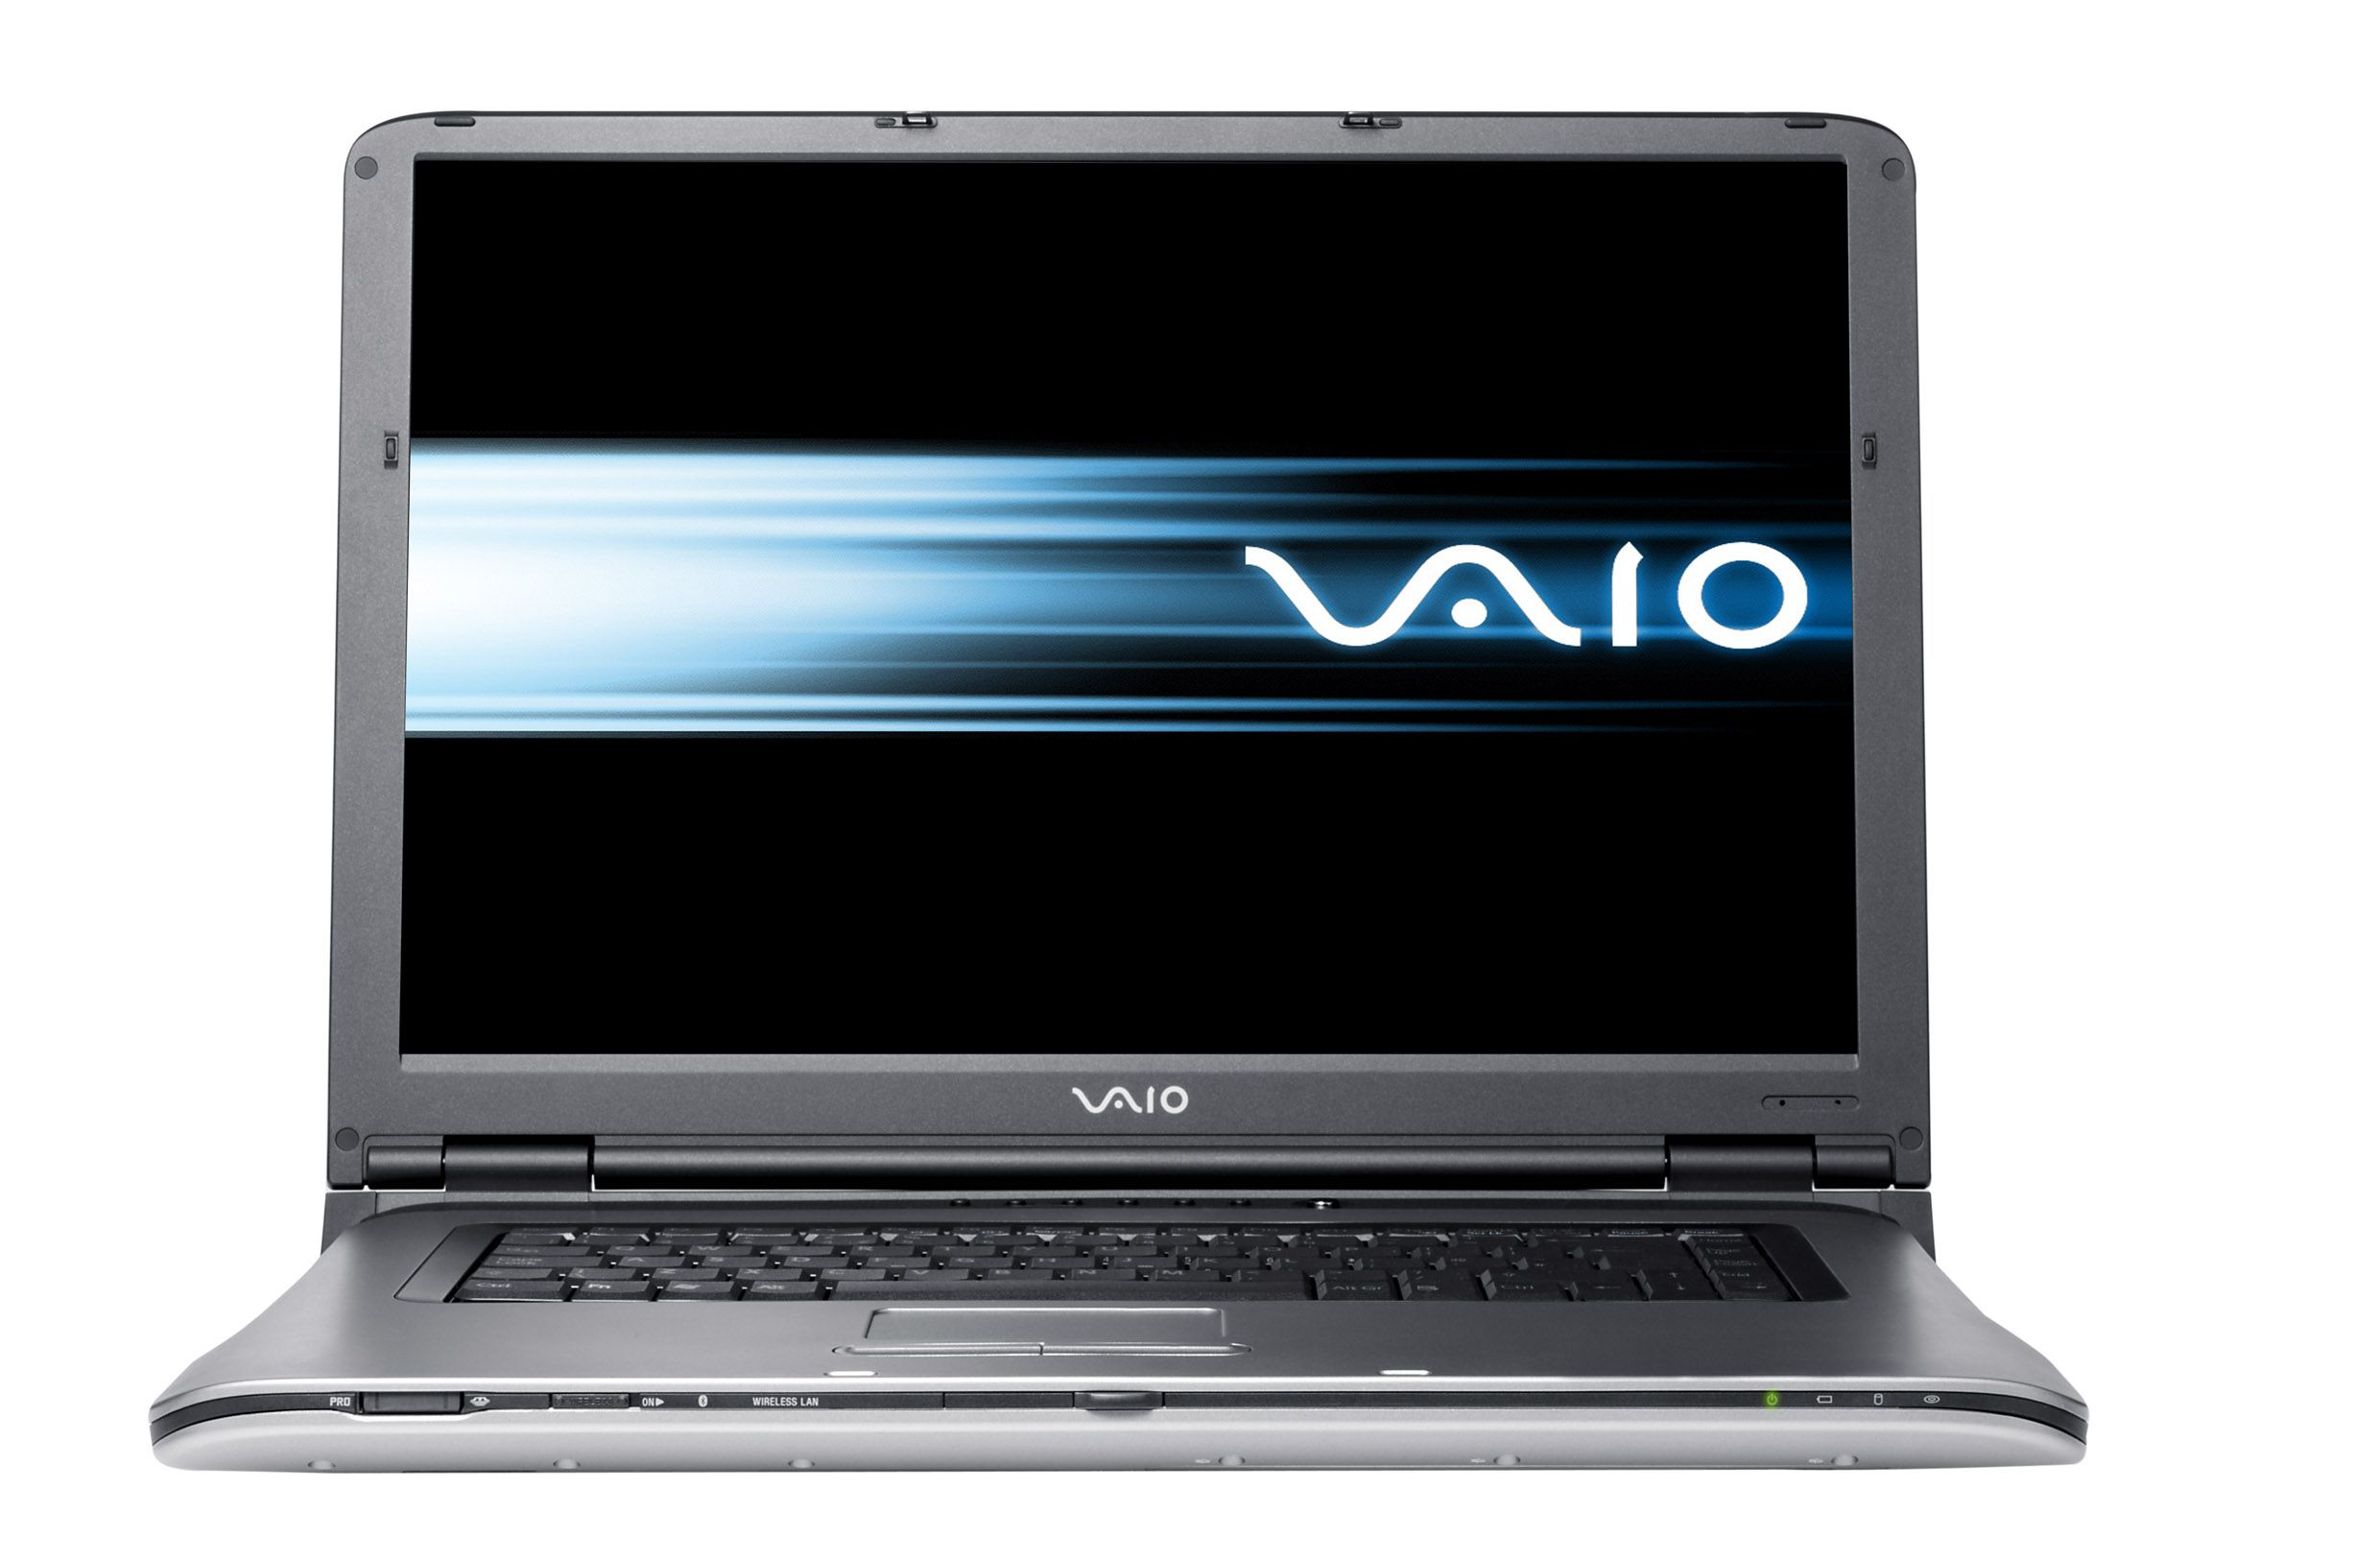 Pin By Tucci Kings On Laptops Computer Deals Laptop Shop Laptop